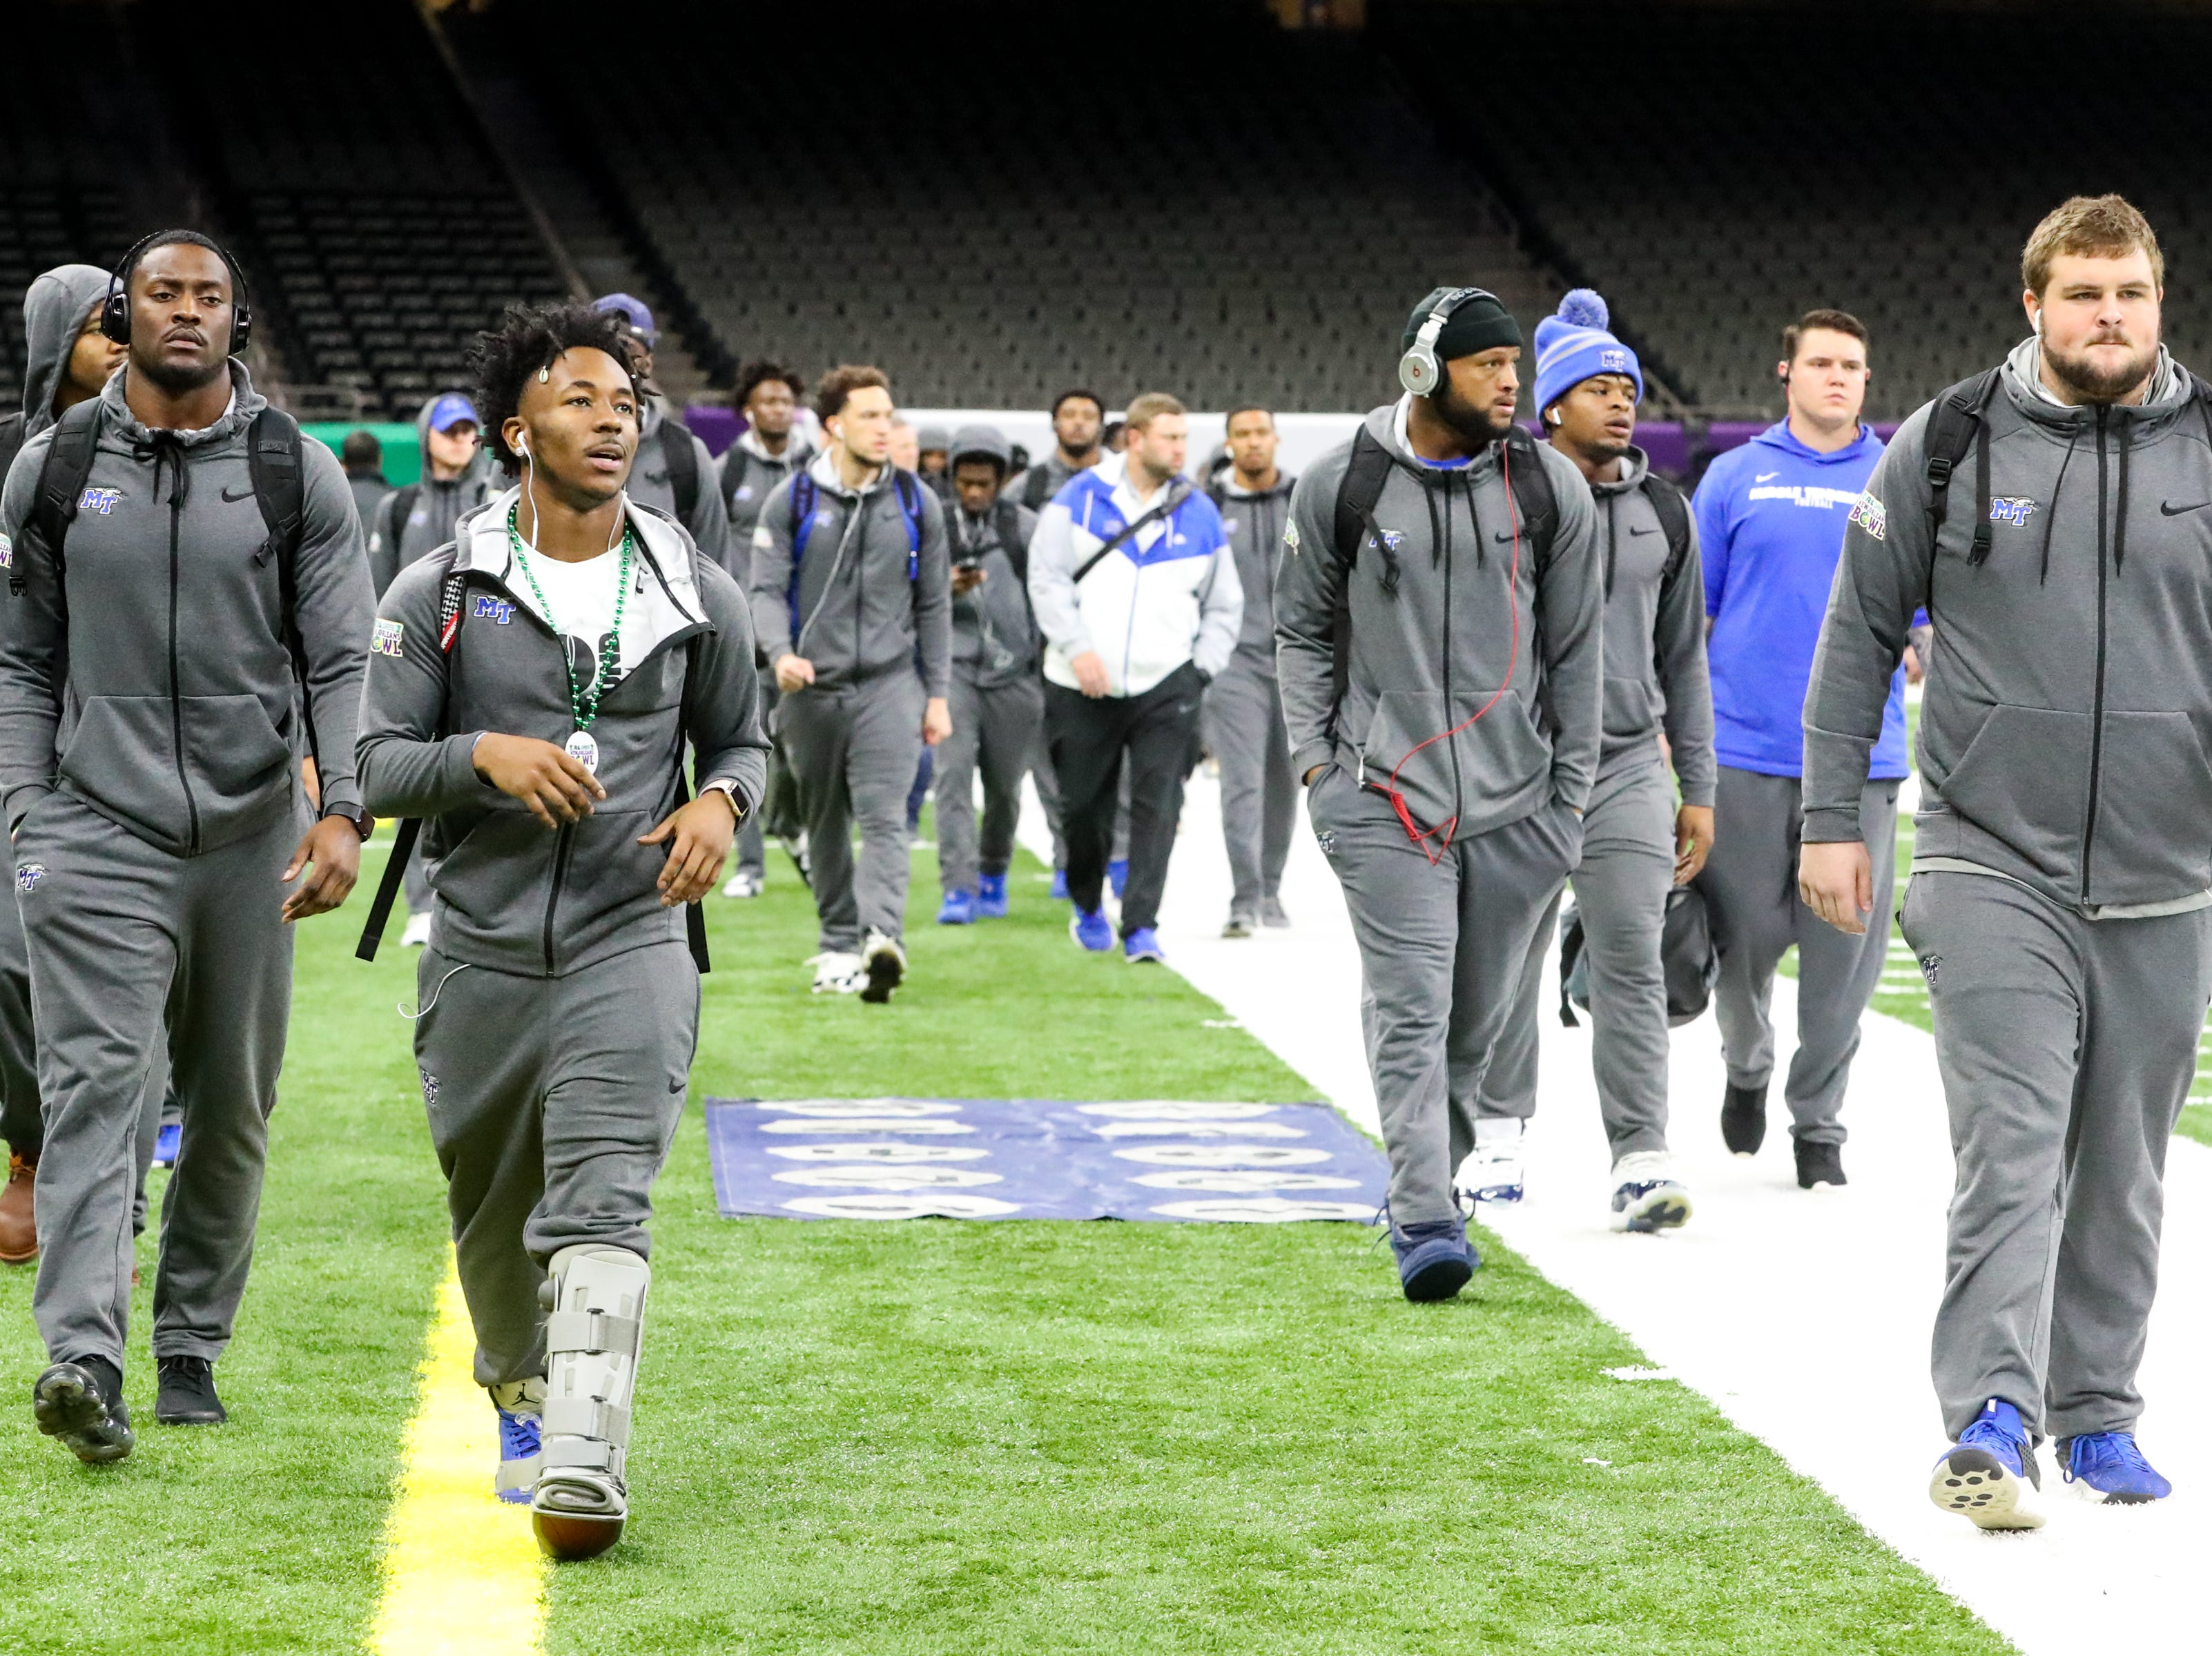 Middle Tennessee Blue Raiders arrive at the Mercedes-Benz Superdome before the game Saturday, Dec. 15, 2018, in New Orleans, La.